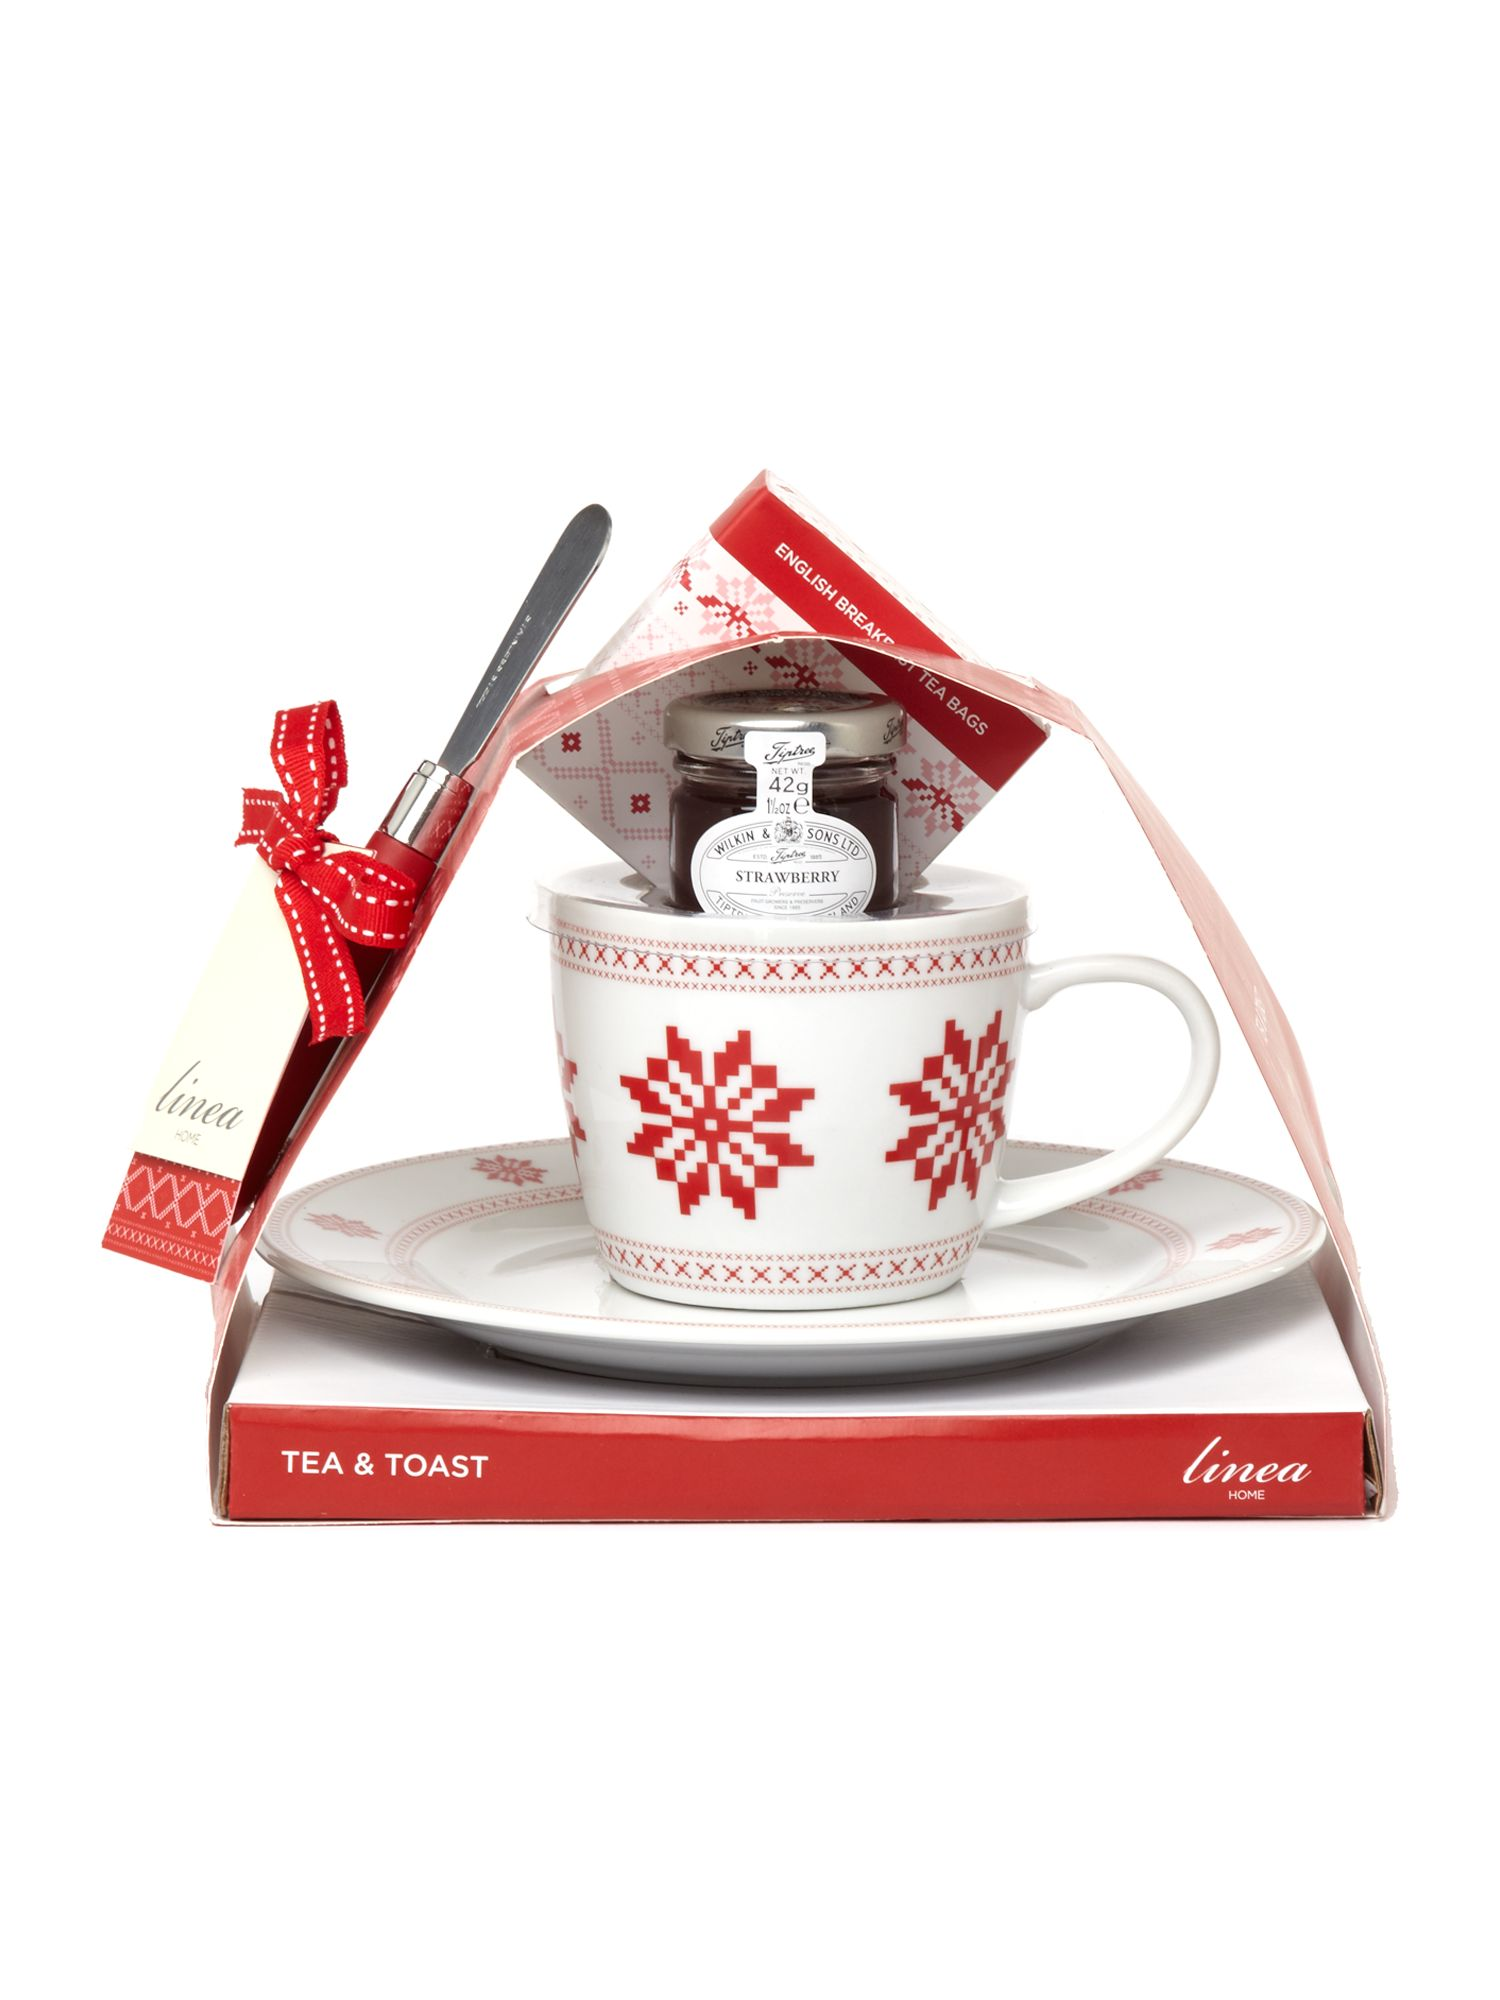 Linea tea & toast set